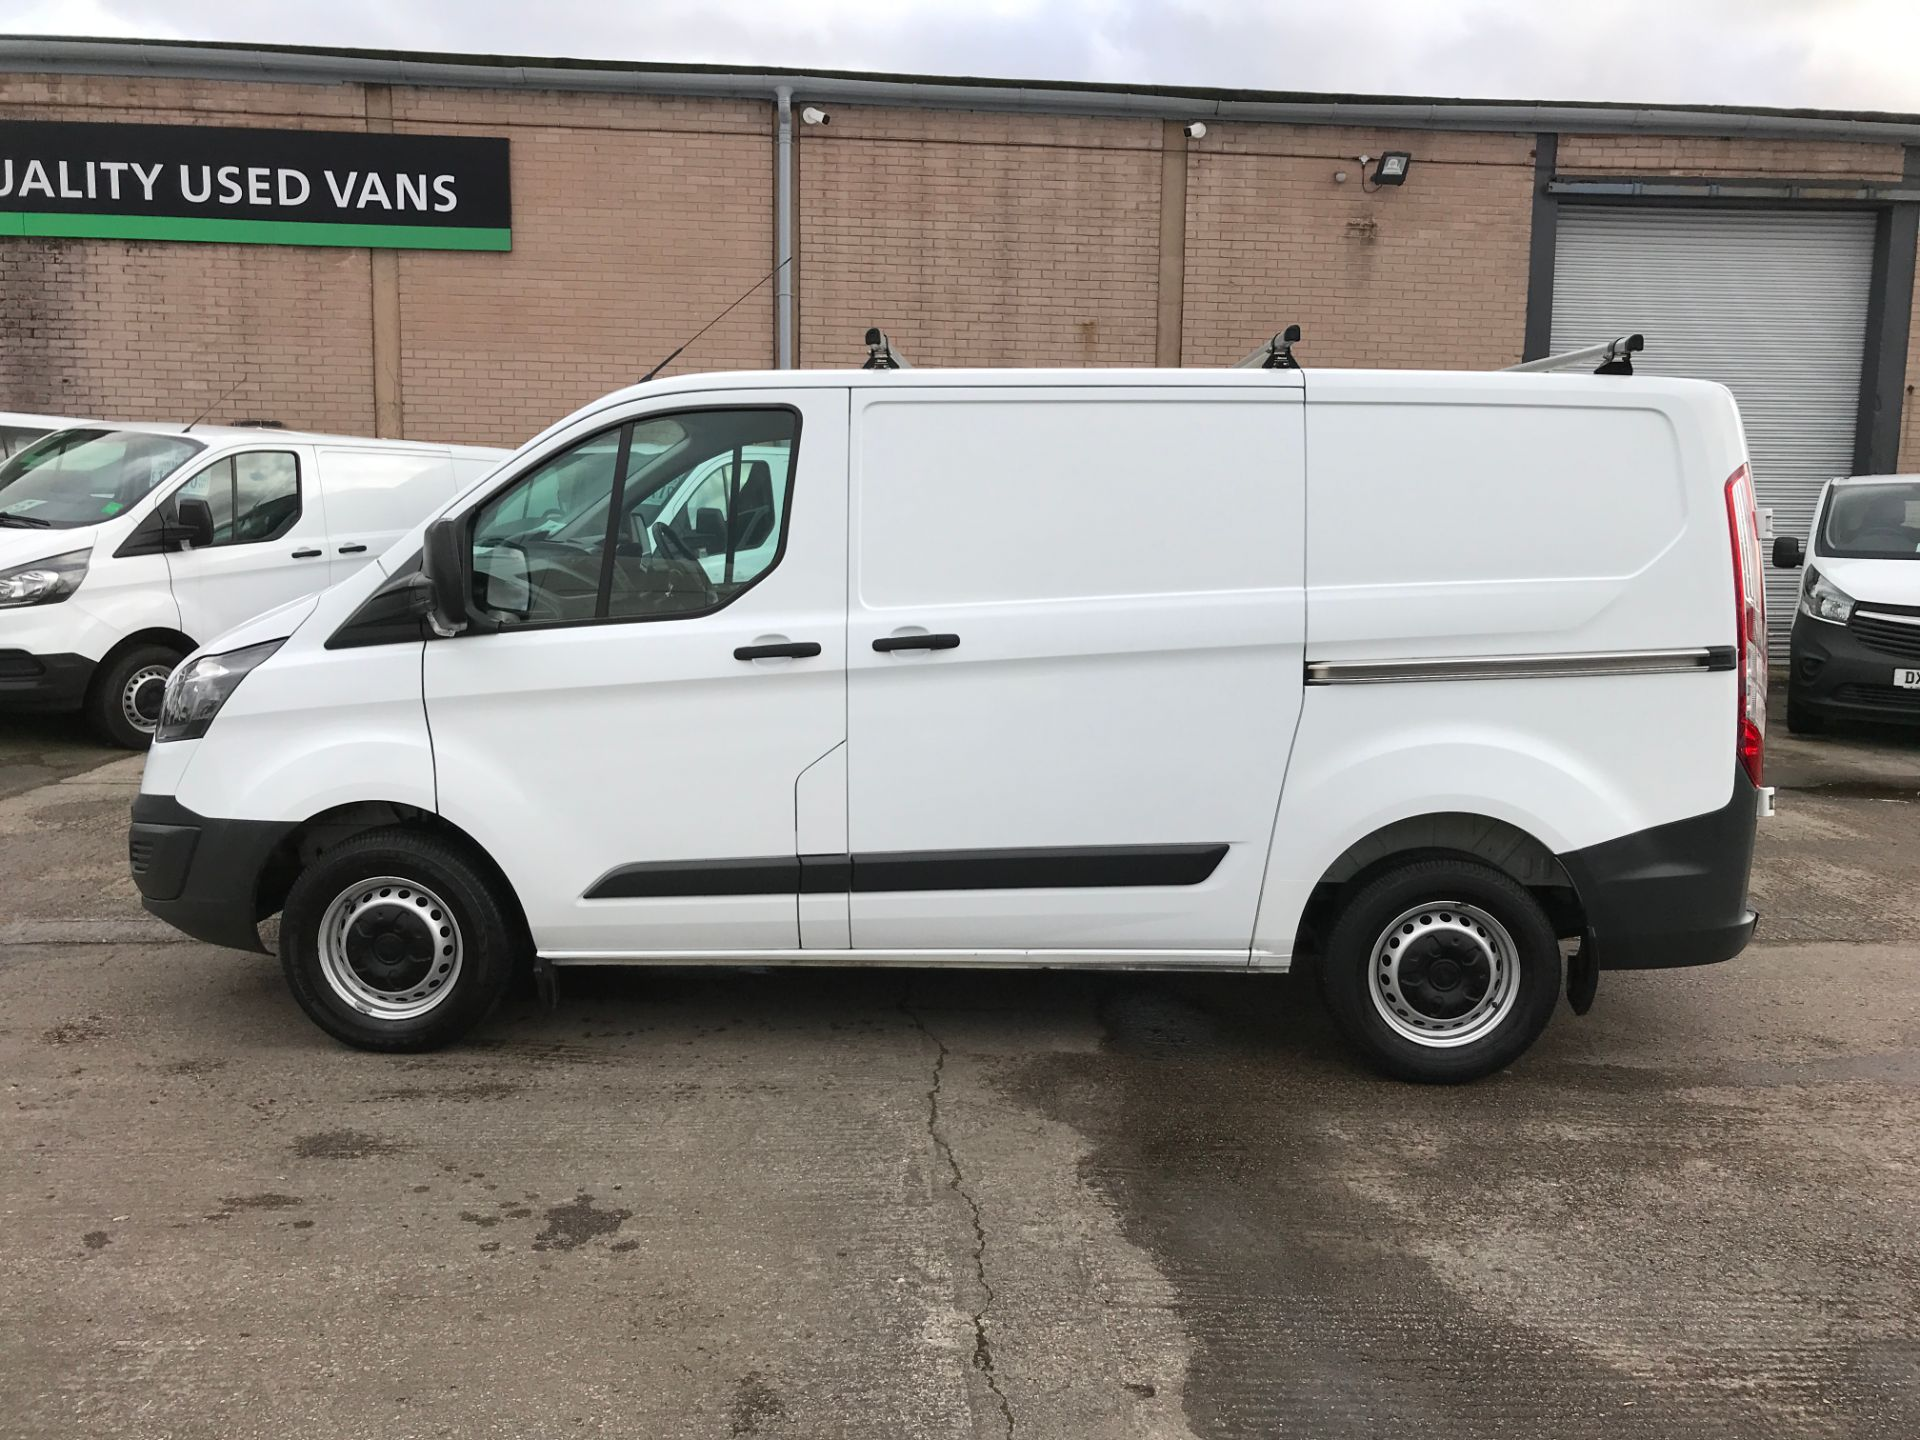 2017 Ford Transit Custom 290 L1 2.0TDCI 105PS LOW ROOF EURO 6 (FN17ZZU) Image 11